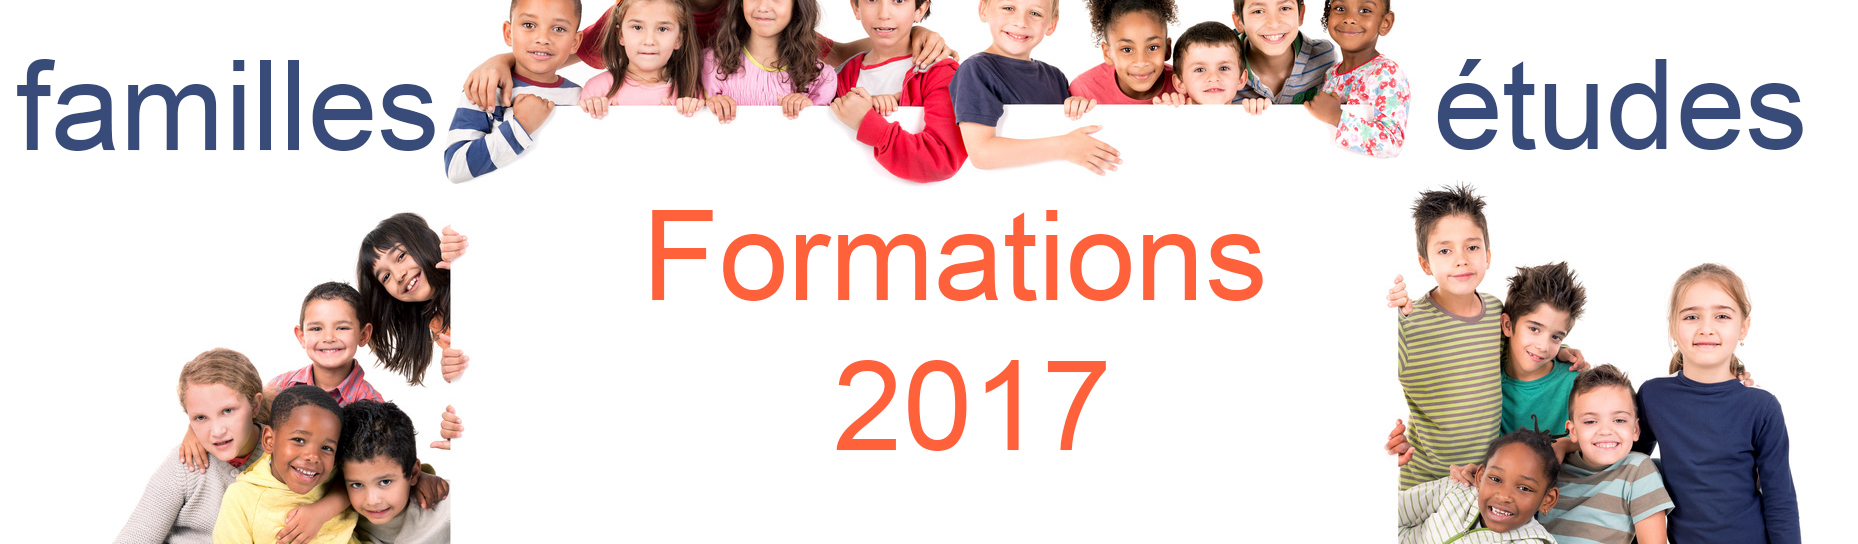 formations familles 2017